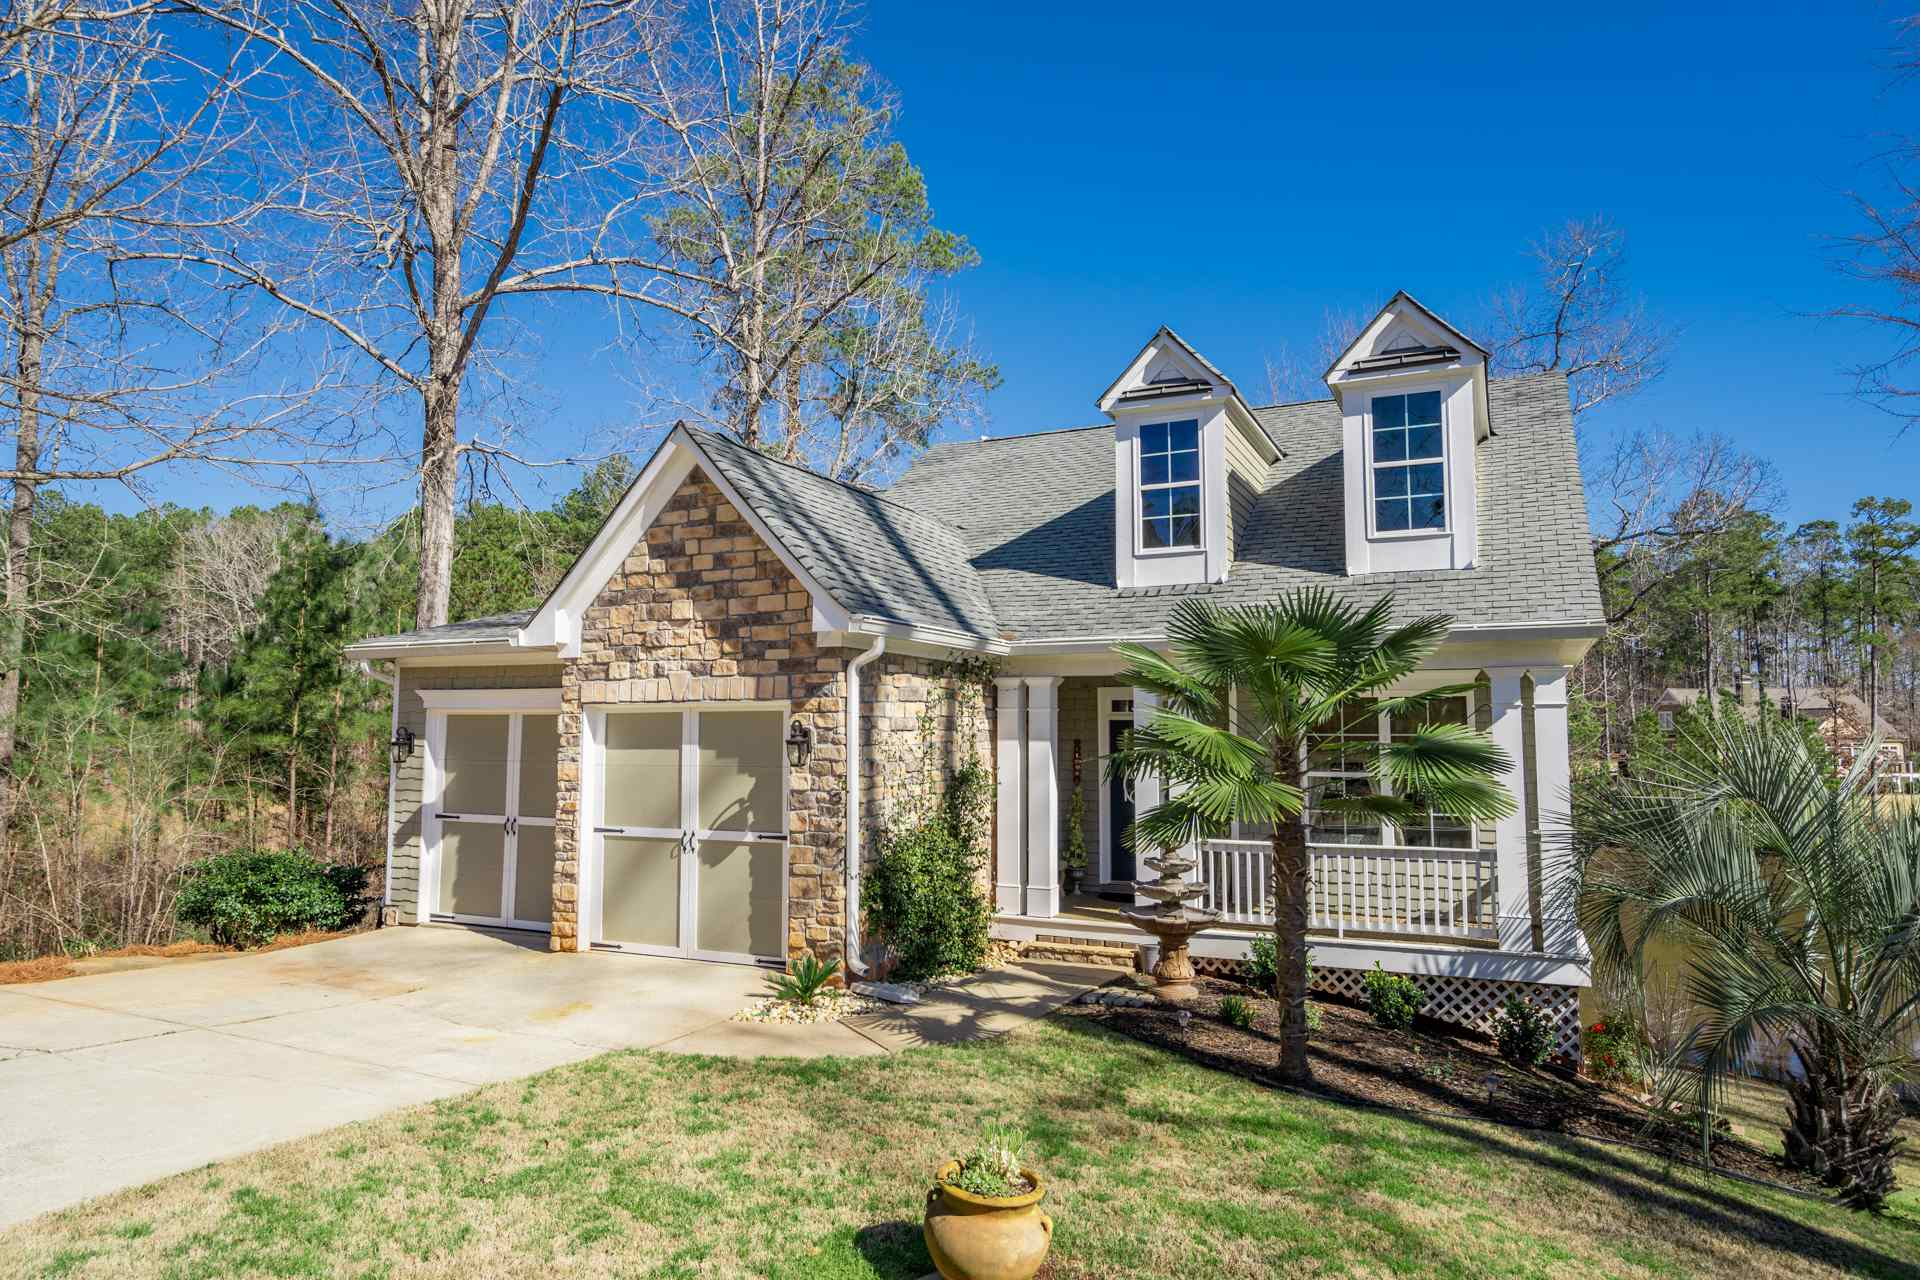 One of Lake Oconee Harbor Club 3 Bedroom Homes for Sale at 1081 BRASSIE LANE